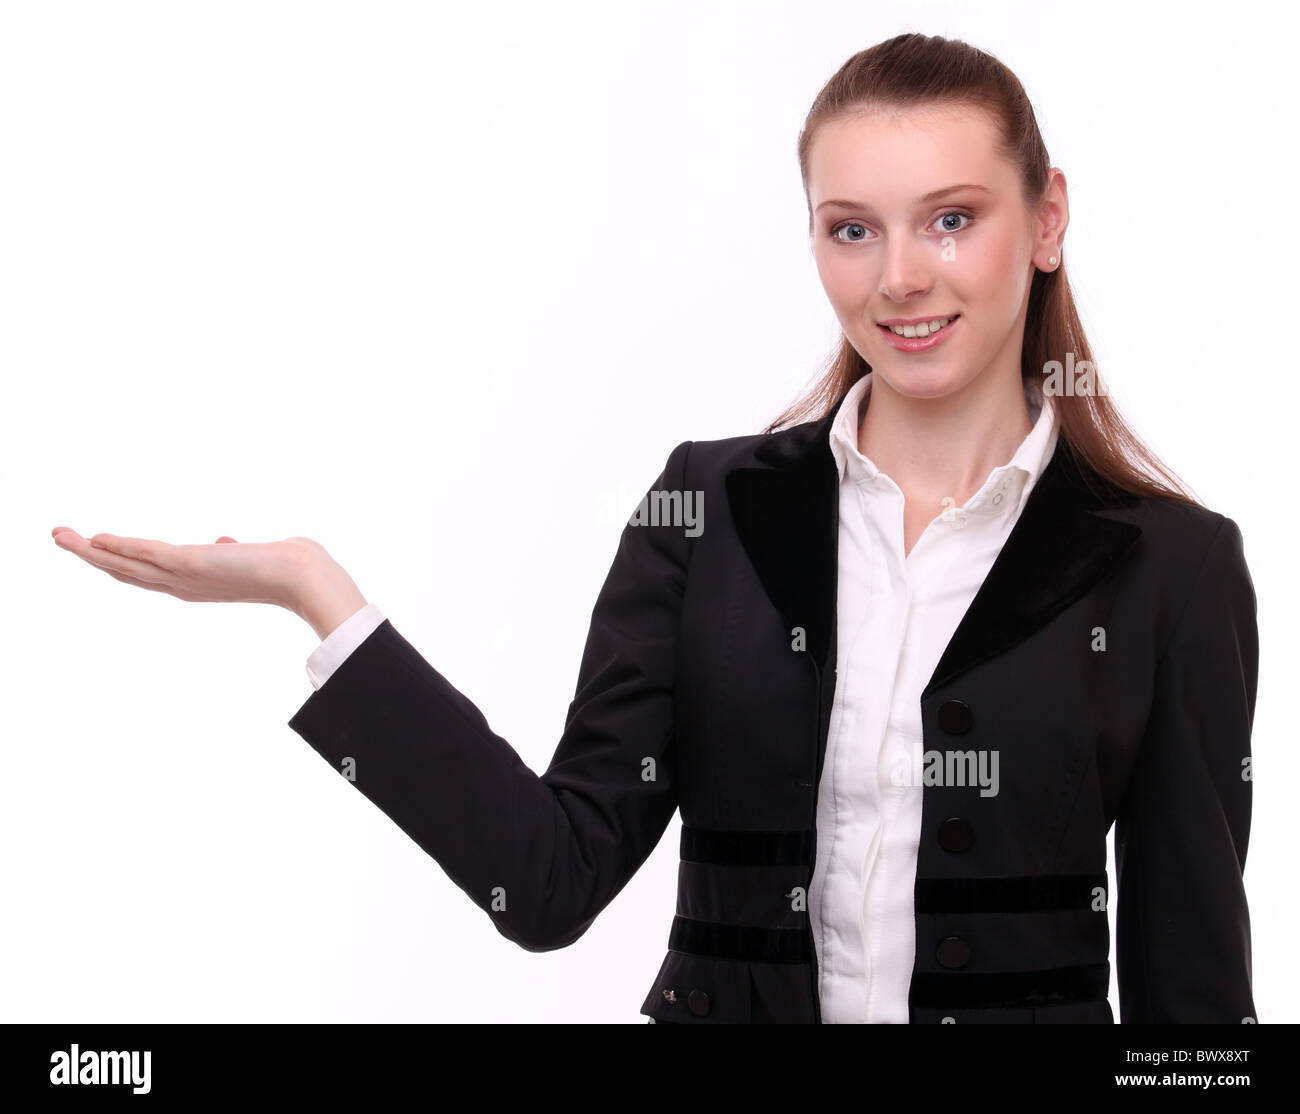 Business woman shows empty hand. Isolated on a white background. - Stock Image